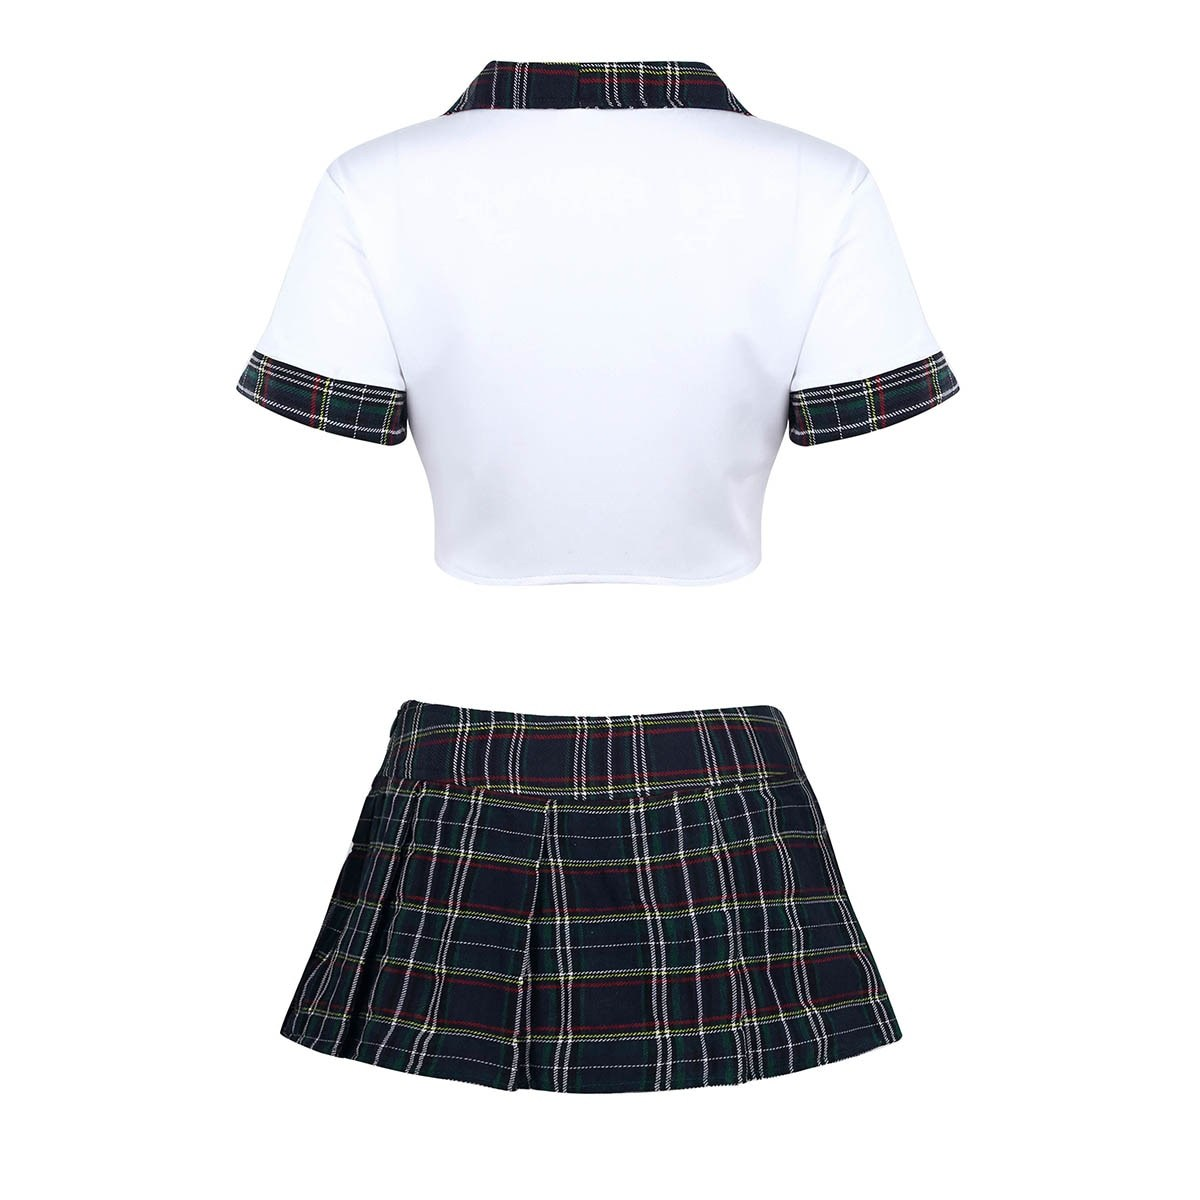 Naughty Lingerie School Costume - Sexy Skirt Student Girls